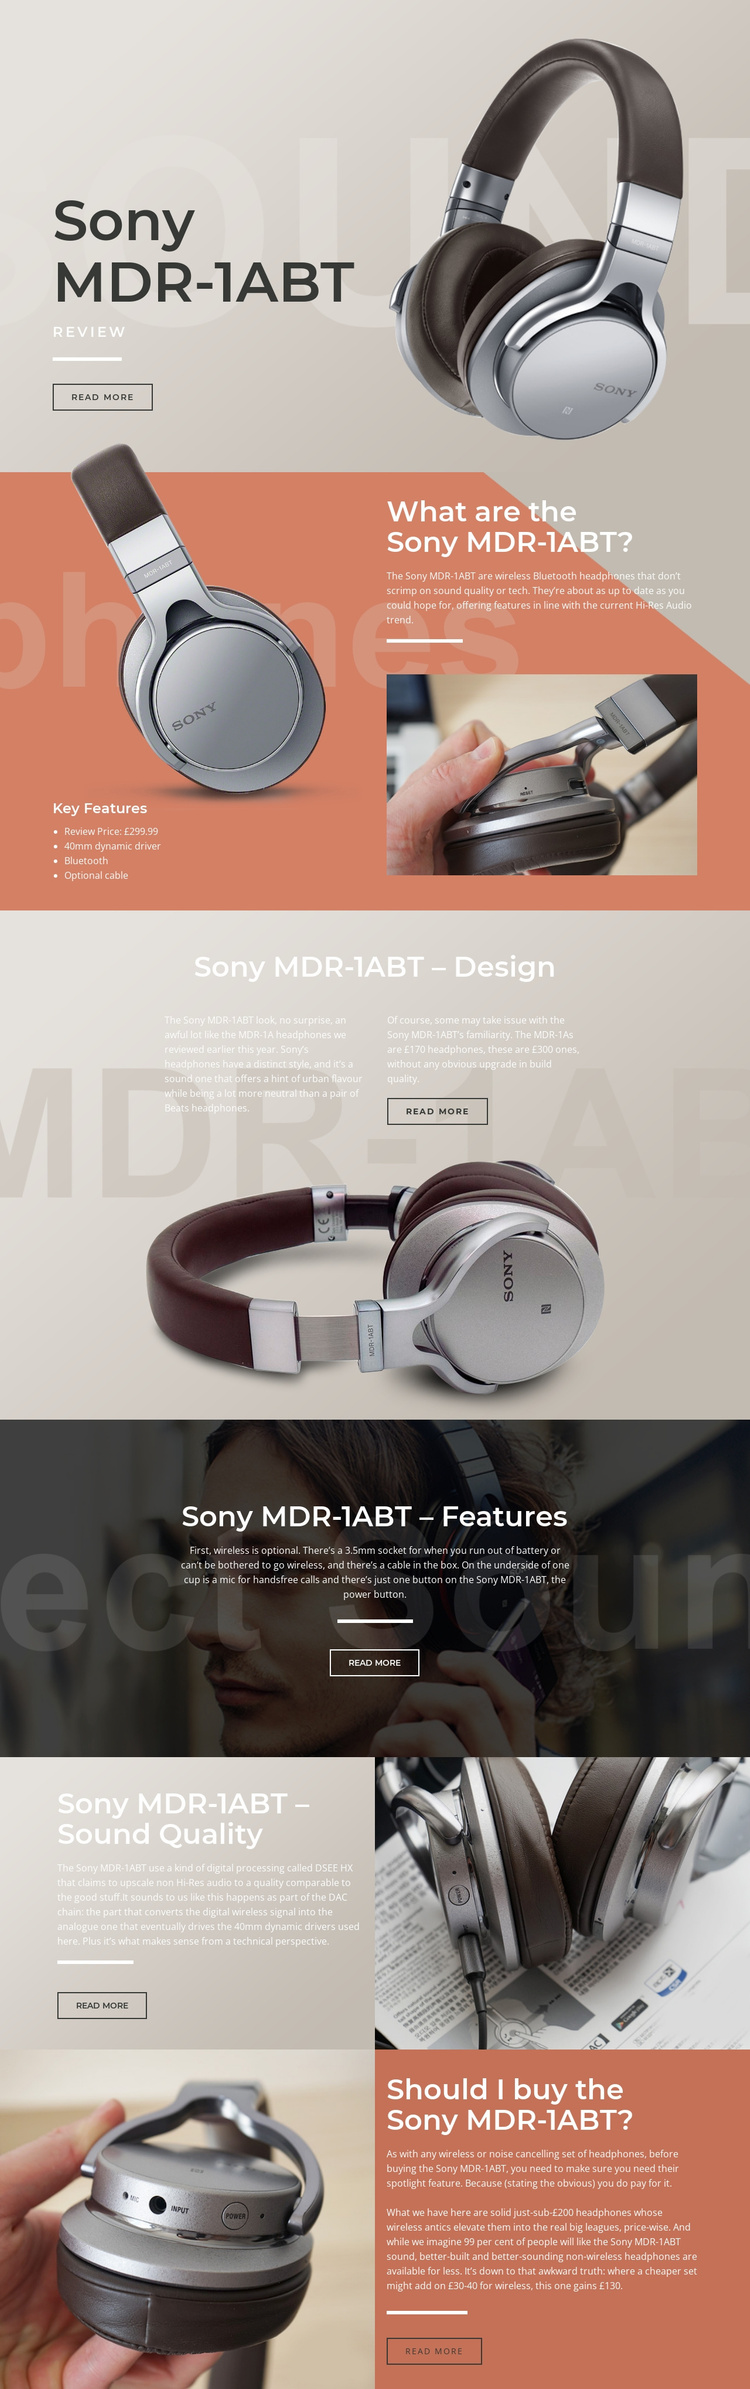 Listening your favorite music Joomla Template